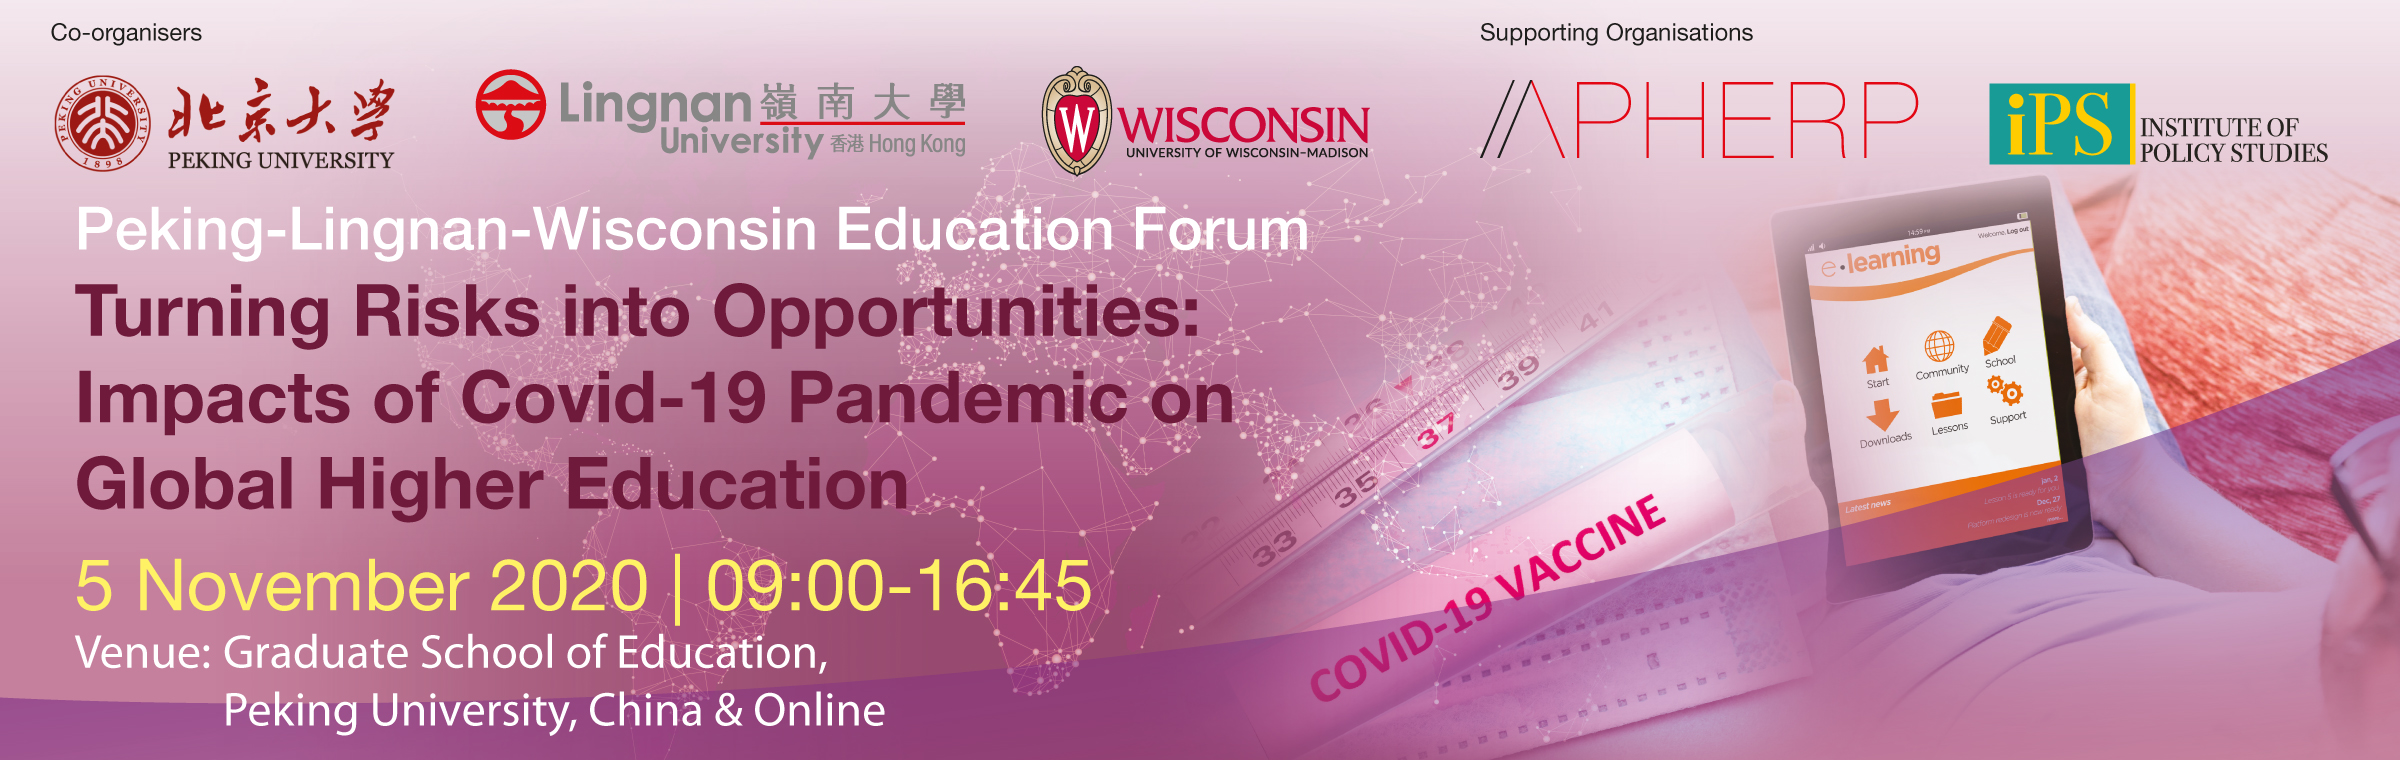 Peking-Lingnan-Wisconsin Education Forum 2020